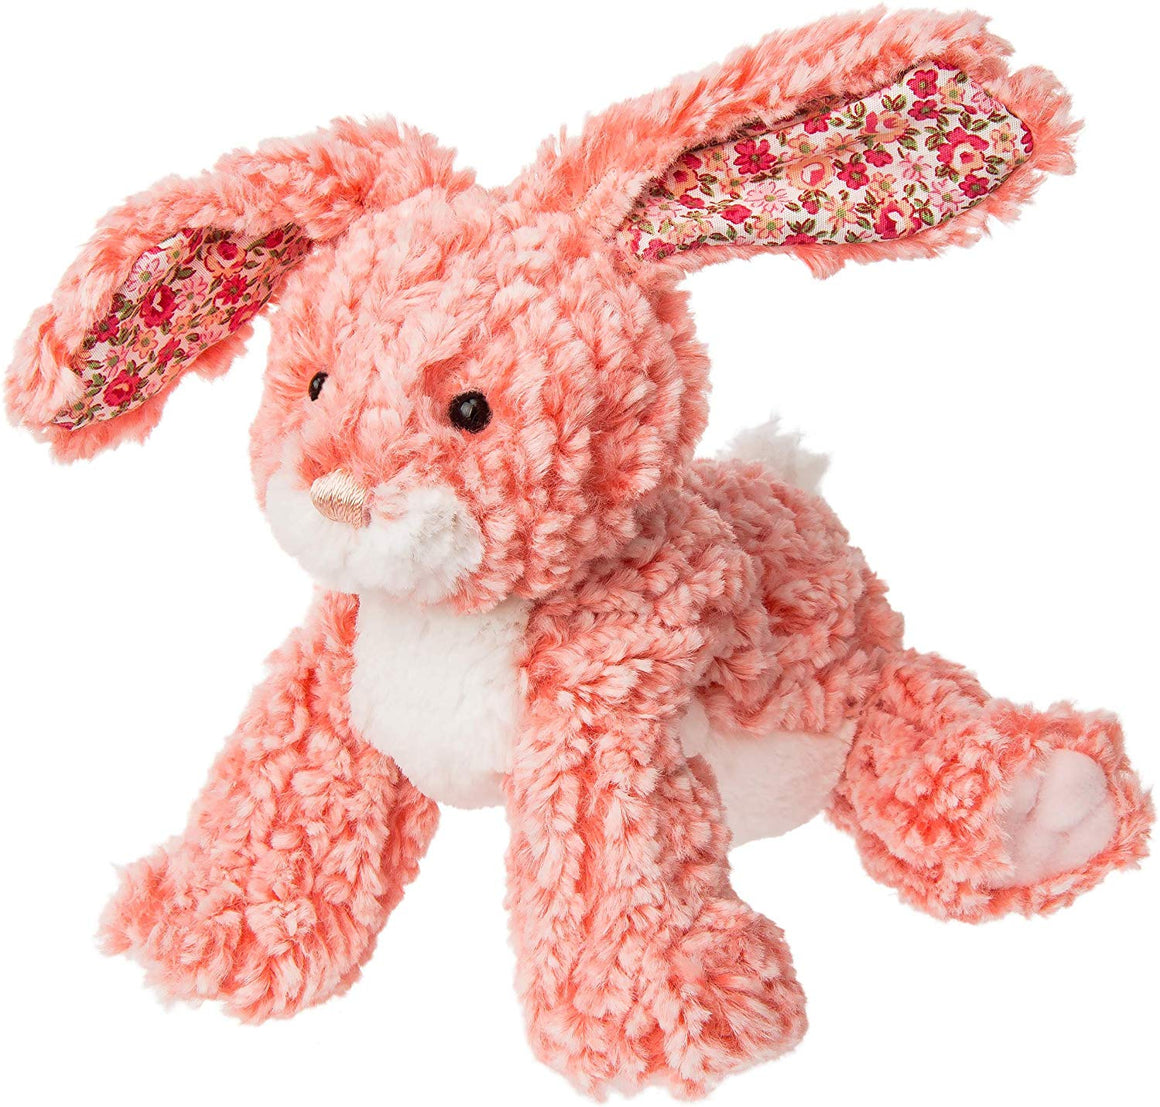 Stuffed Animal | Cherry Bunny